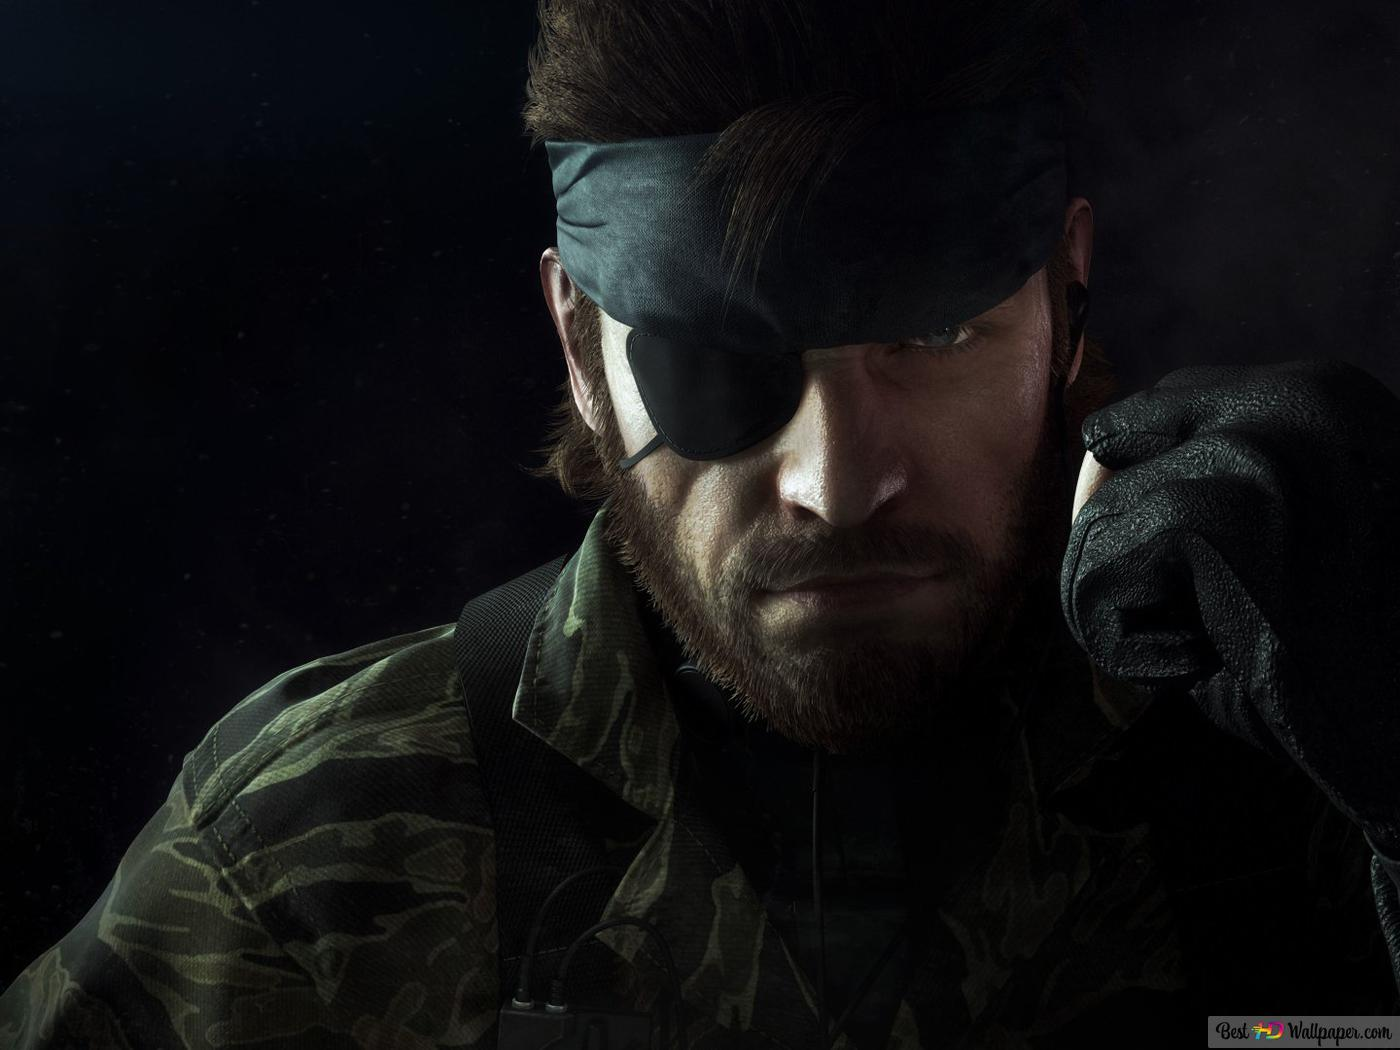 Metal Gear Solid 3: Snake Eater HD Wallpaper Download